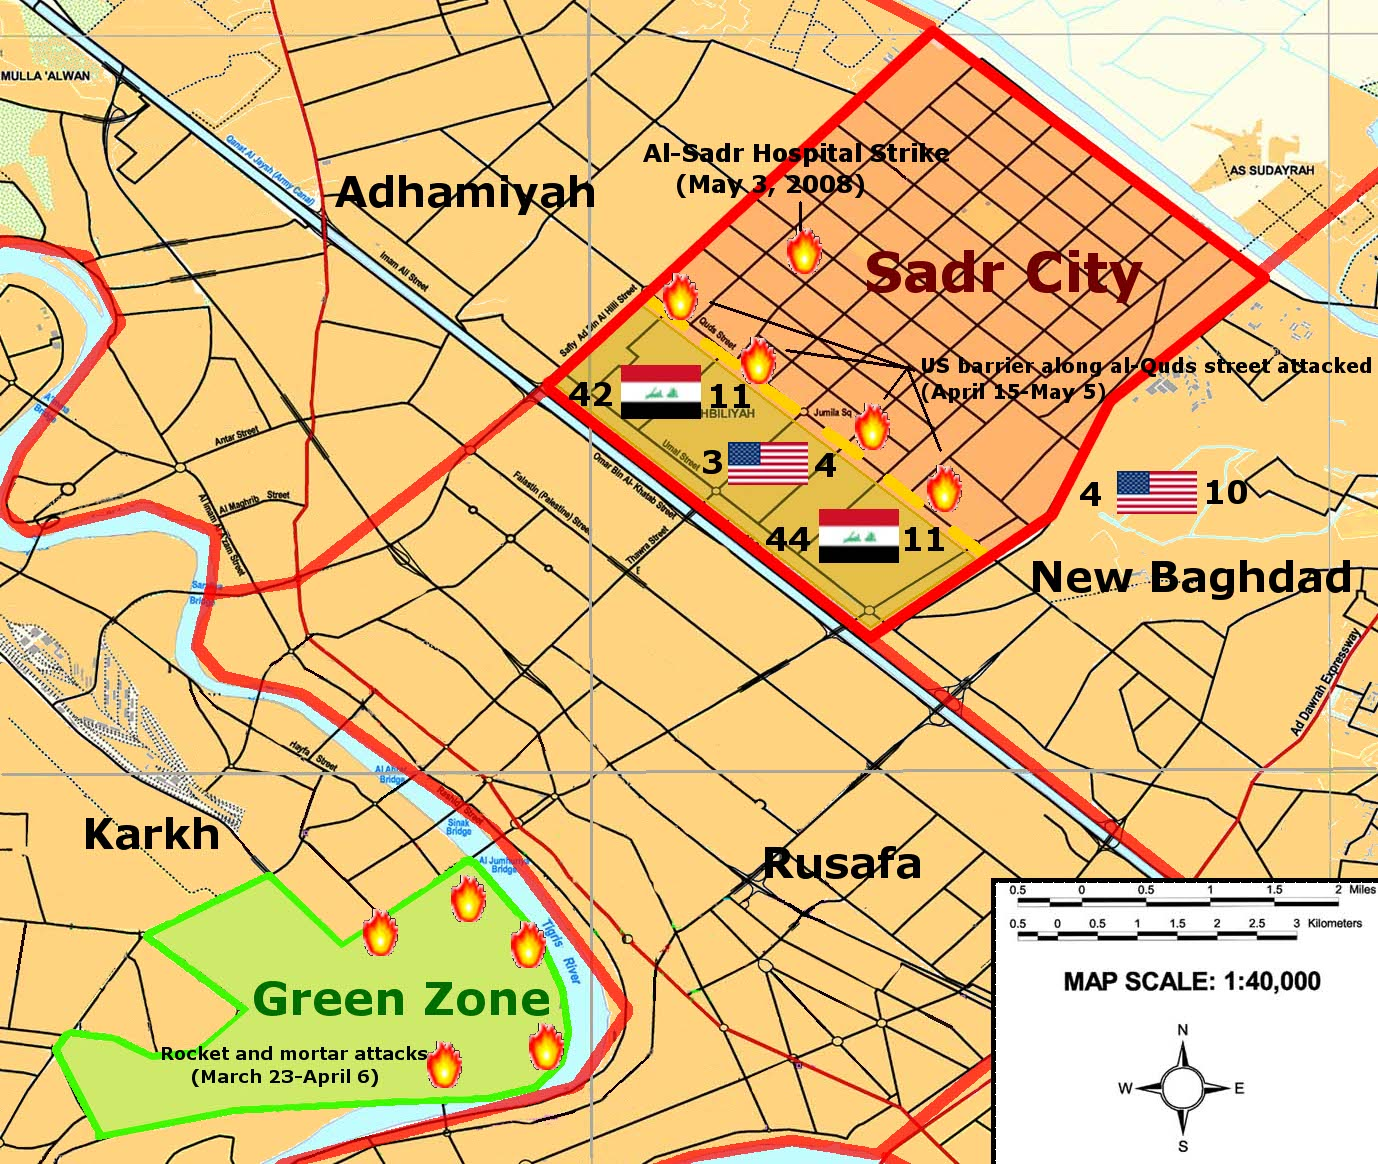 Siege of Sadr City Map (courtesy: Wikipedia) - This shows how close Sadr City and the Green Zone were located to each other.